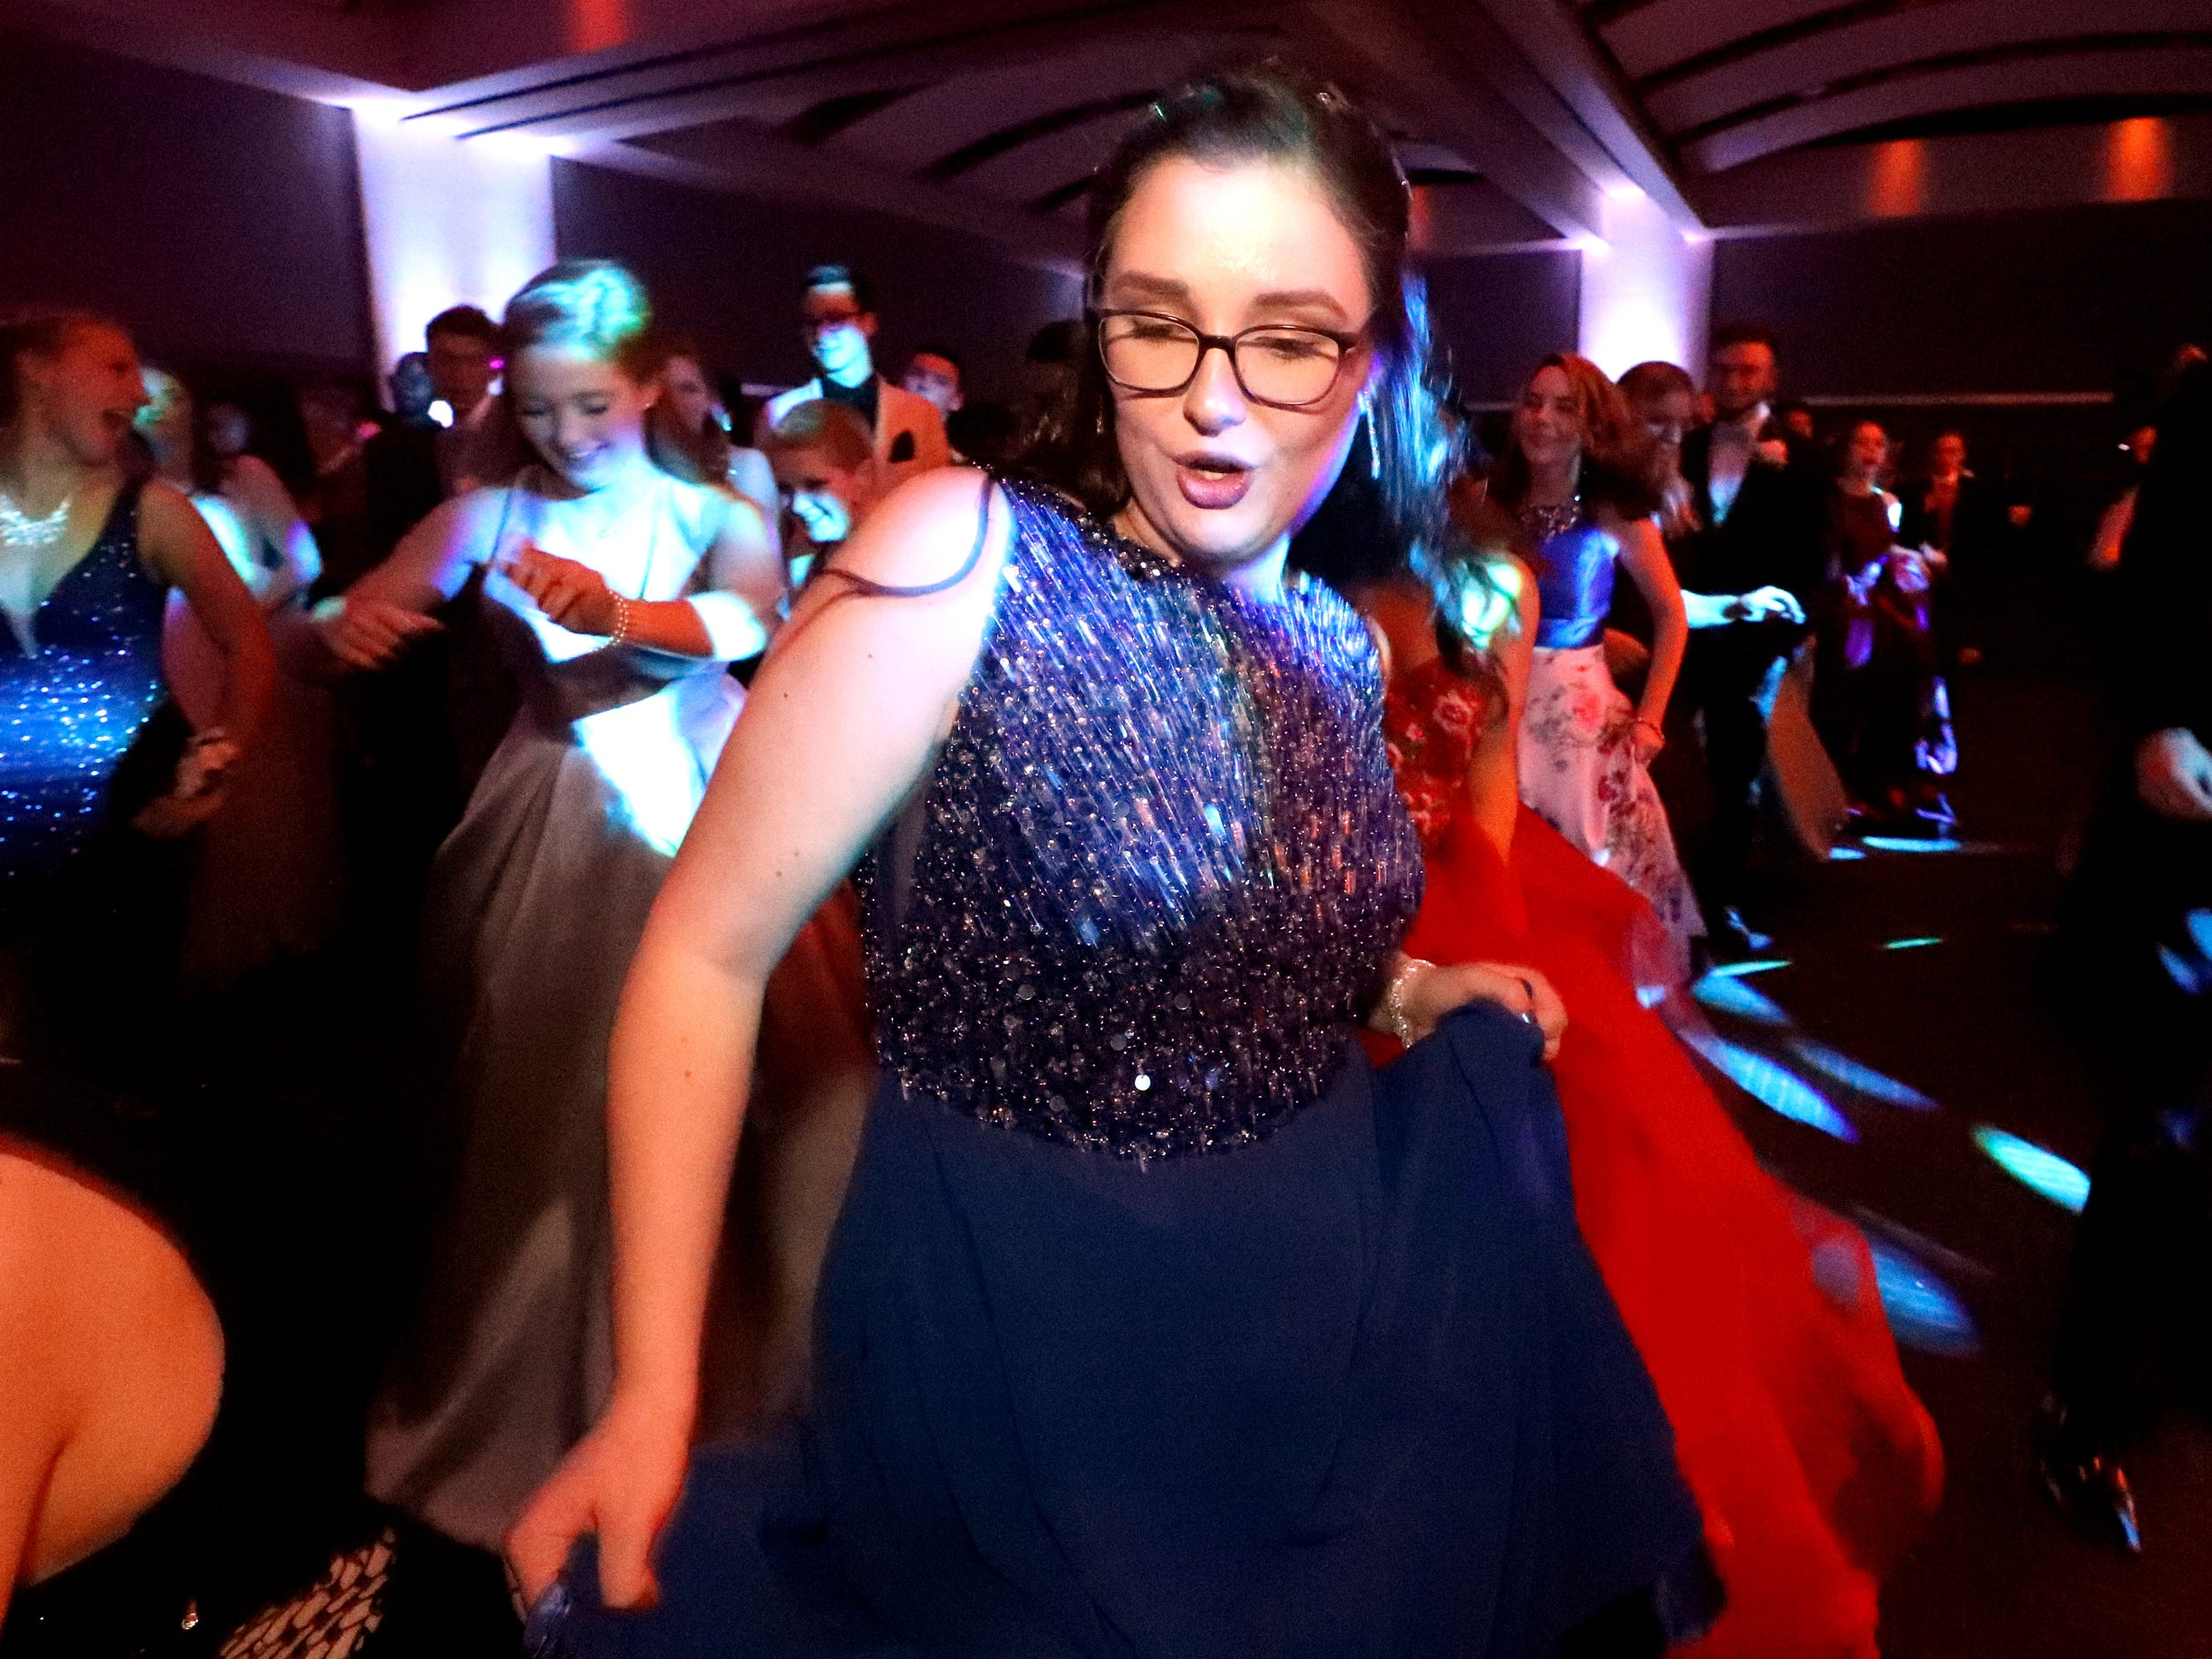 Julia Neal dances at Blackman's prom on Friday April 12, 2019, at MTSU.